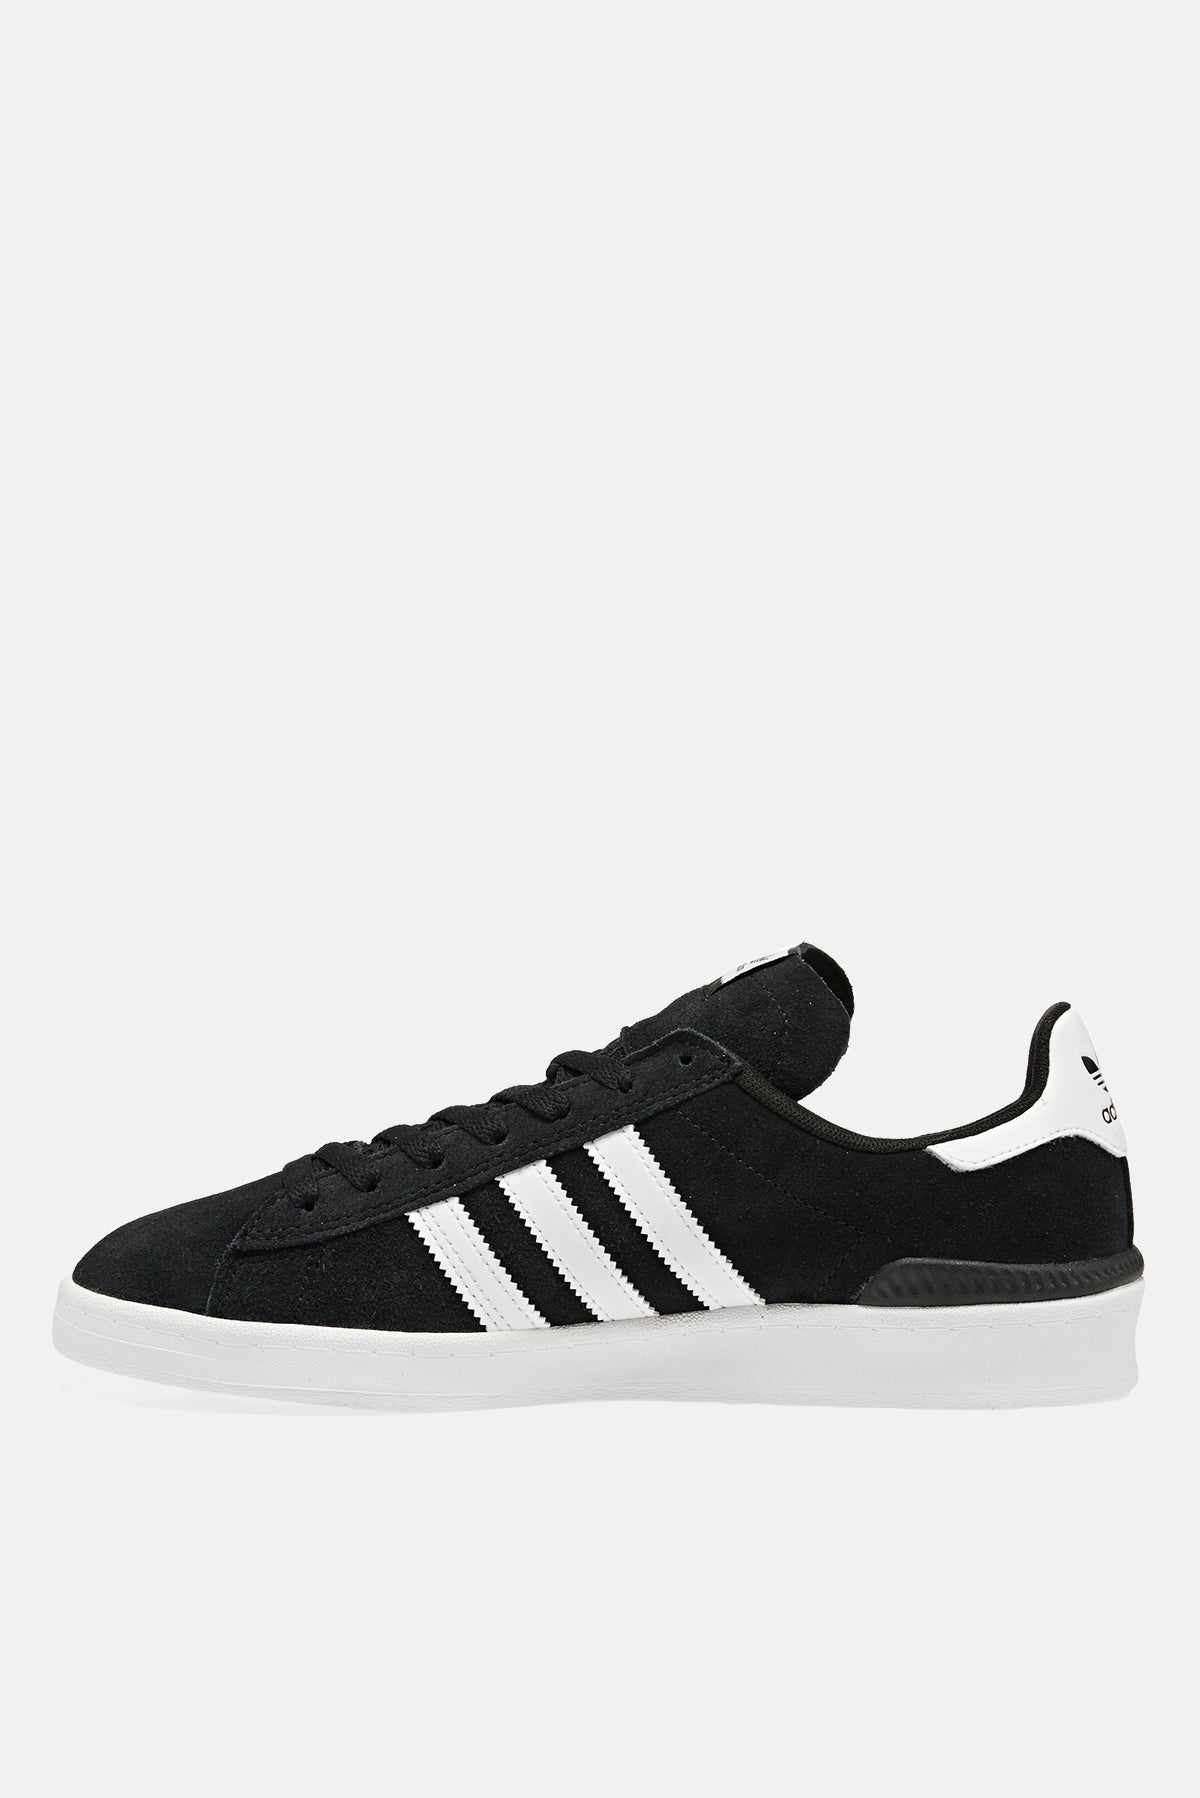 d456155db82d6c Adidas Campus ADV Shoes available from Priory